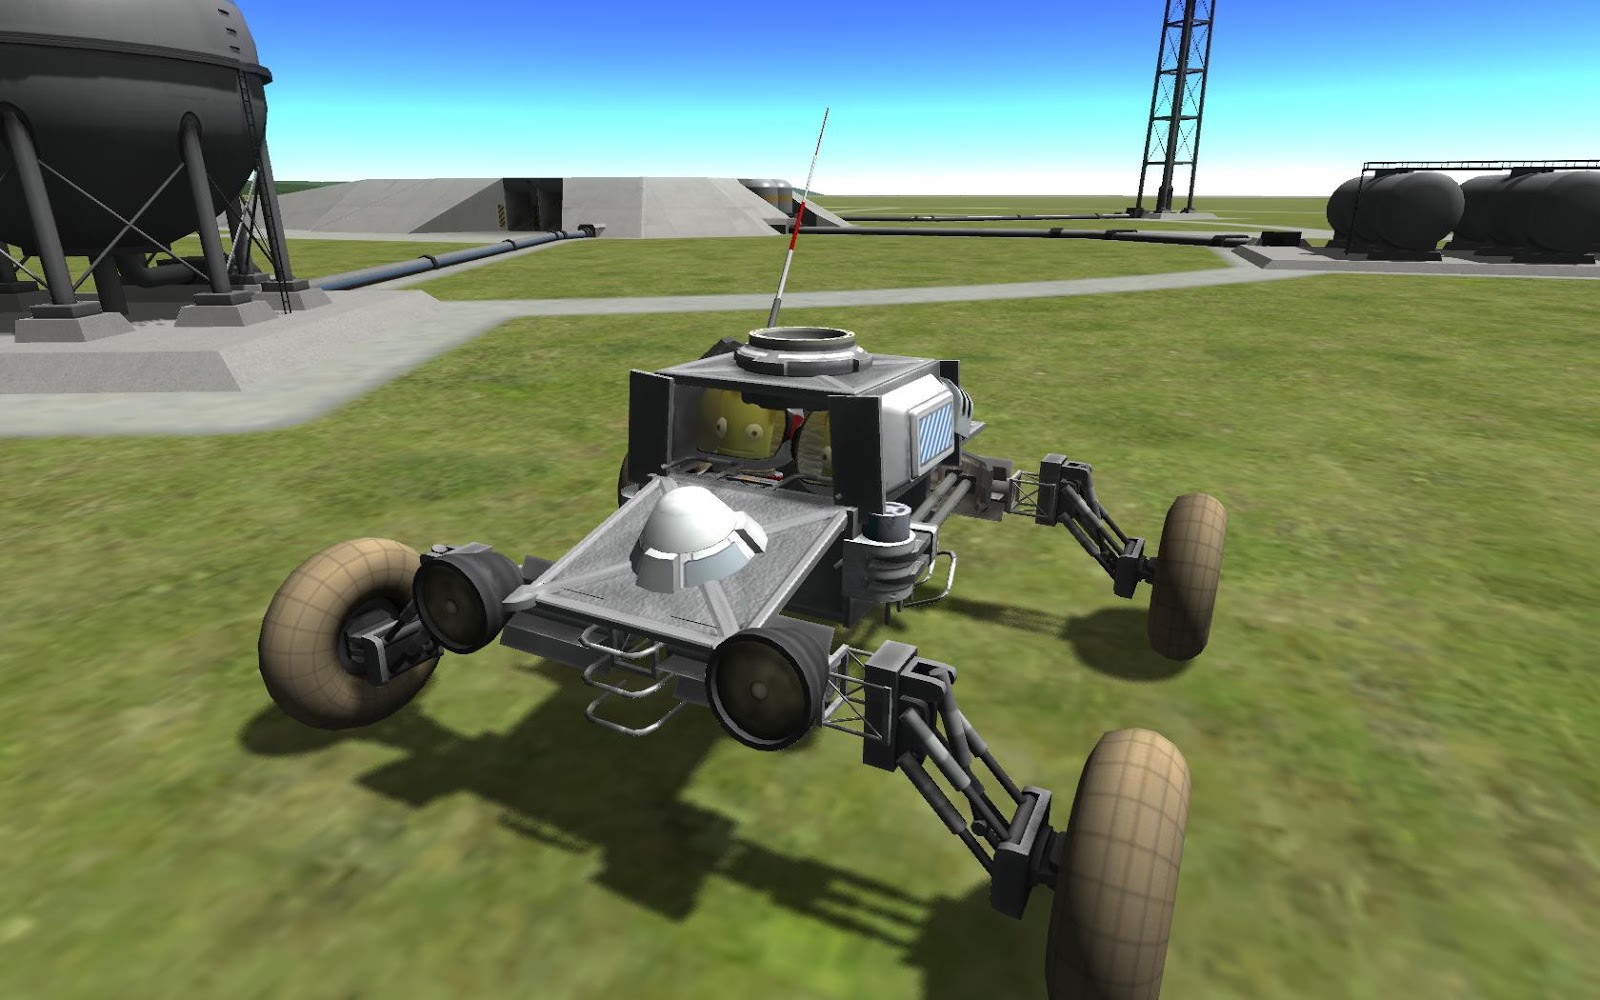 nasa ksp rover electric - photo #3